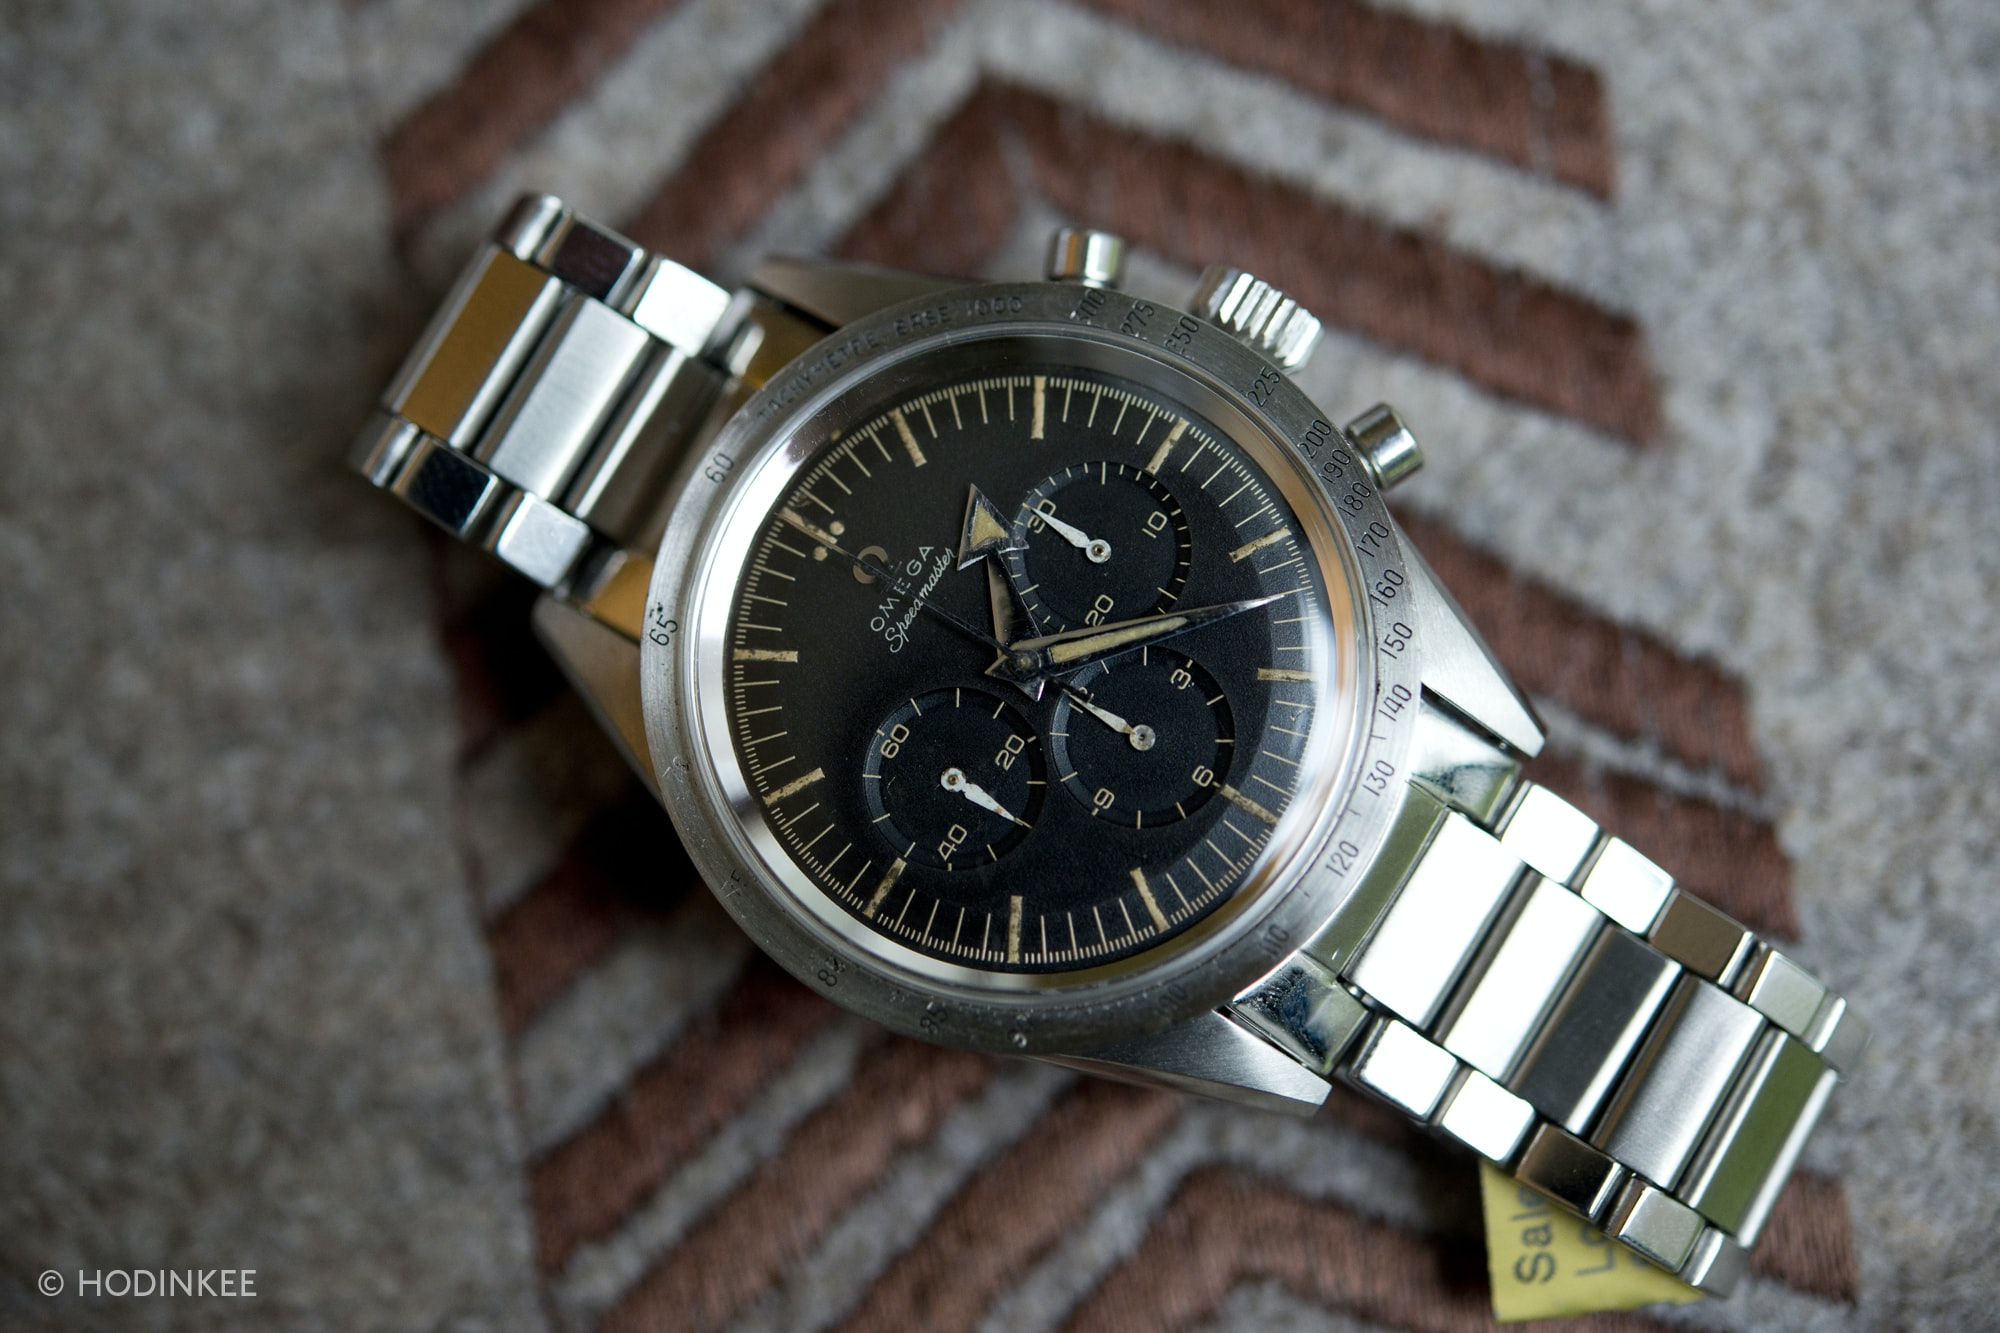 An Omega Speedmaster Reference 2915-1.  The Eight Watch Anniversaries You Need To Know In 2017 The Eight Watch Anniversaries You Need To Know In 2017 90f14d6b592381e3c1dc28277aff5cc5 ixlib rails 1